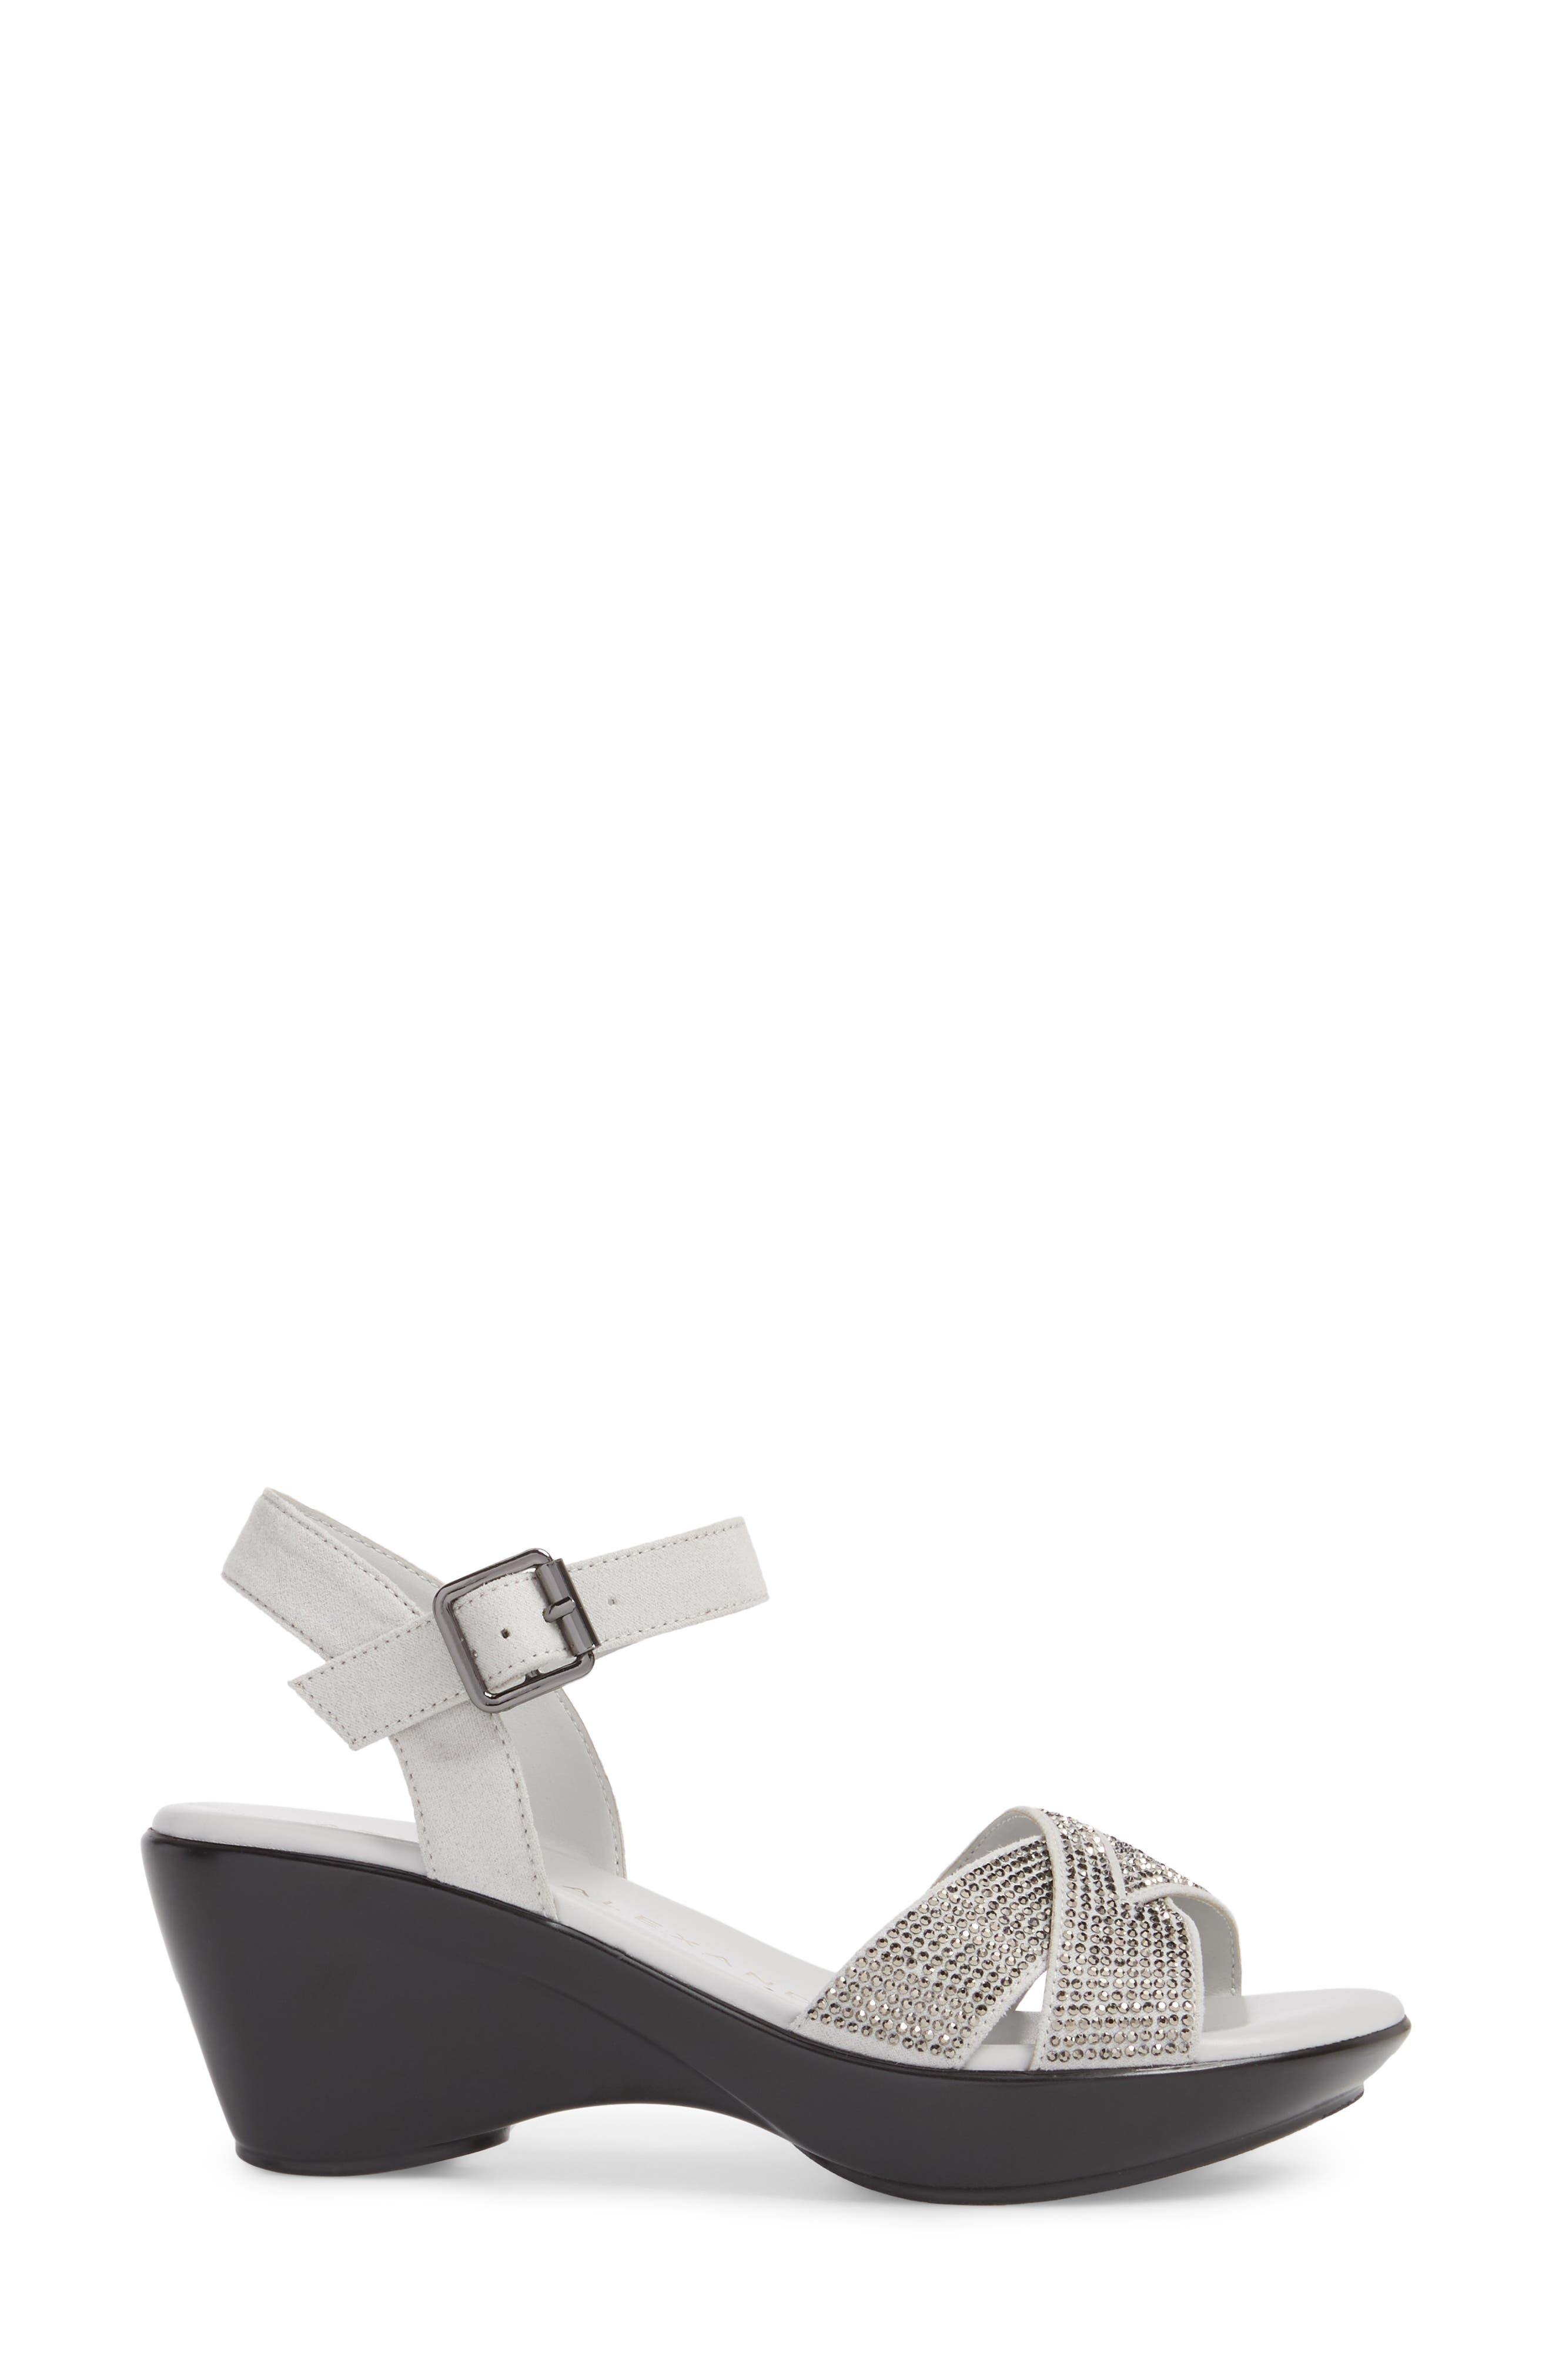 Florence Wedge Sandal,                             Alternate thumbnail 3, color,                             GREY FAUX SUEDE